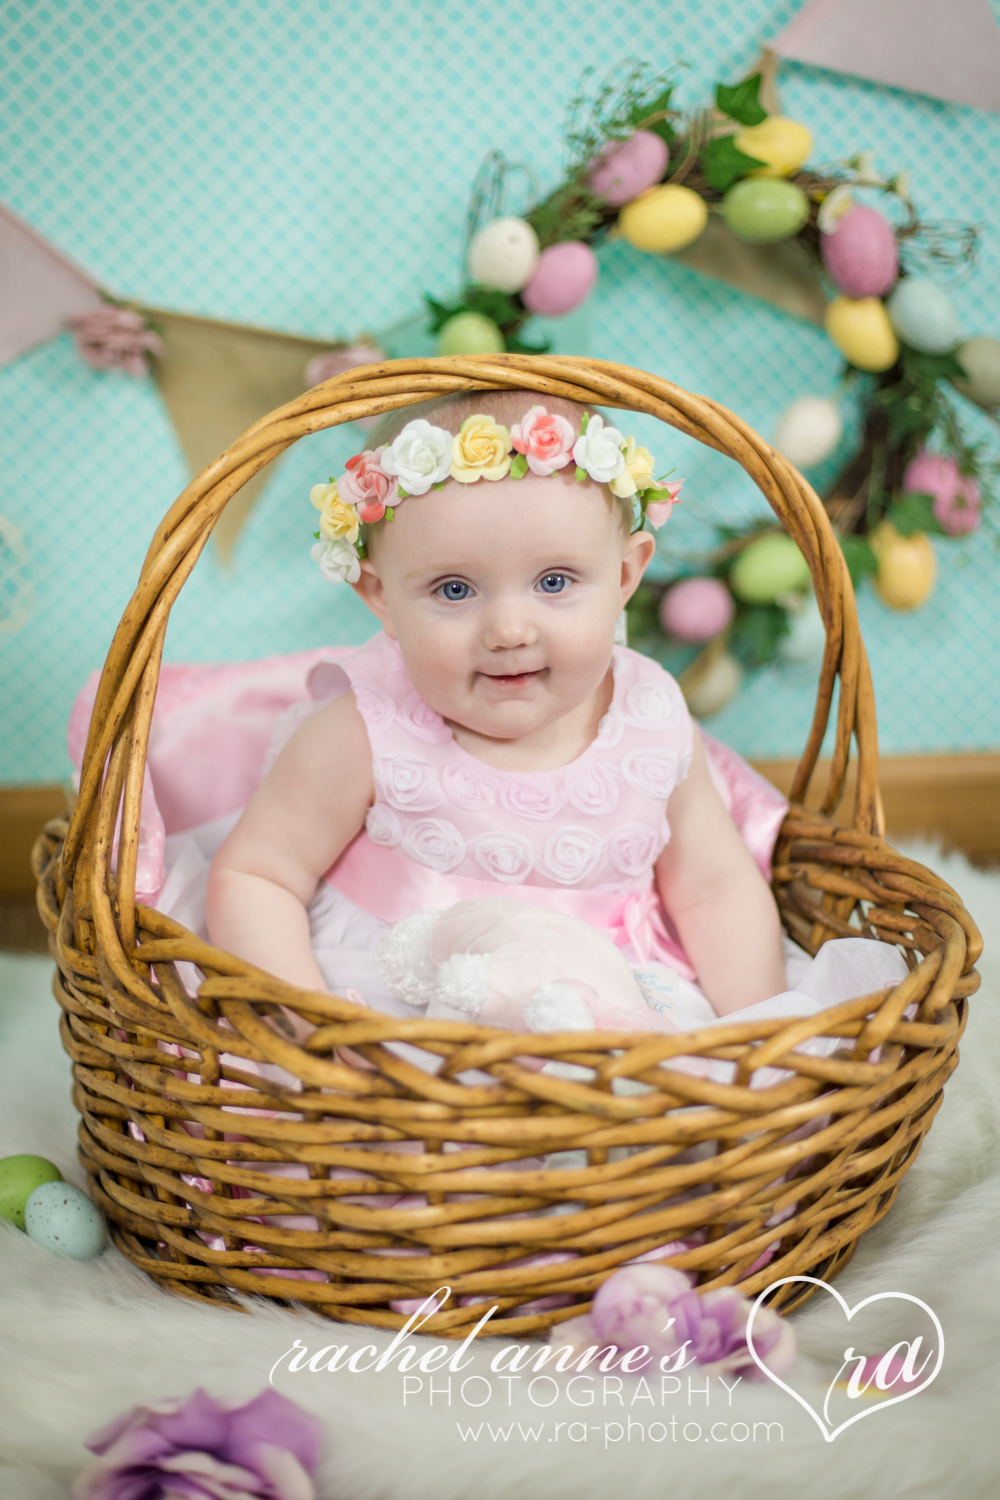 003-WALKER-SPRING EASTER PHOTOS.jpg